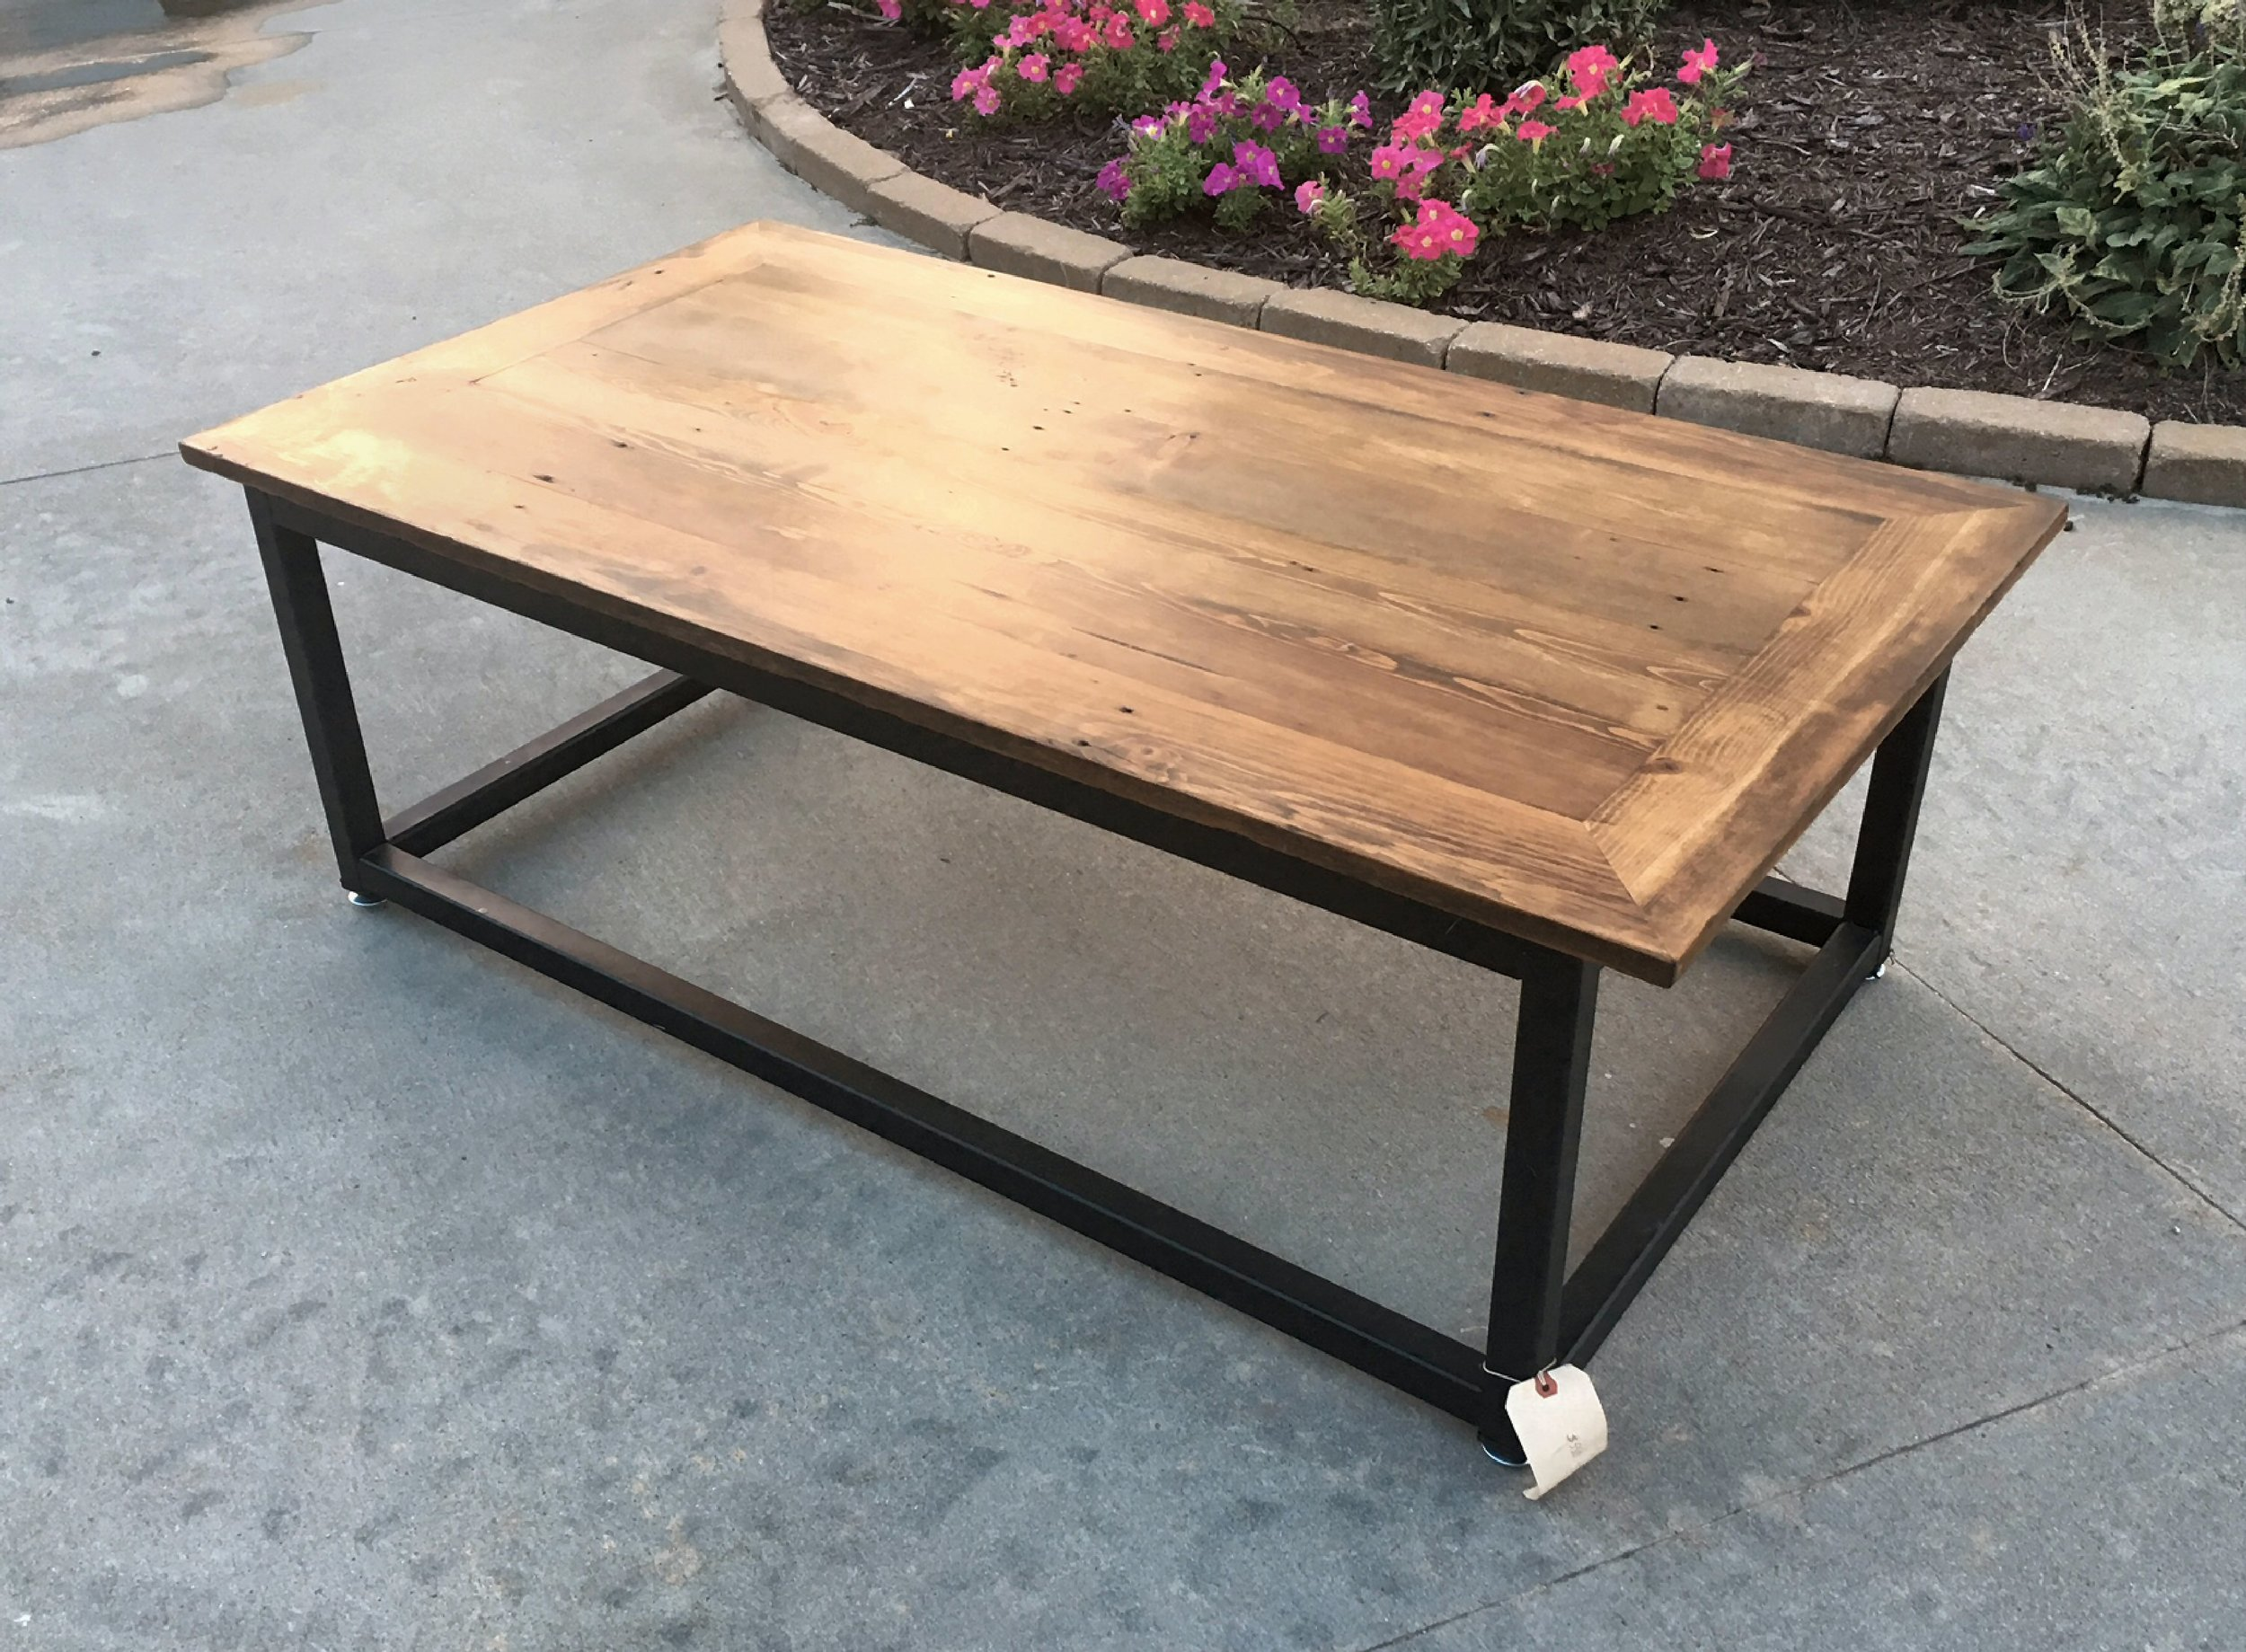 """Bring Rustic Charm to your home decor. The Brick Layers Coffee Table will add ruggedly sophisticated appeal to your living room furniture. The solid wood top has been cleaned and sealed, yet bears the nicks of time and the patina of use. The frame is a hand-welded 1 ½"""" steel base with a black satin finish. This coffee table blends reclaimed wood and iron into a timeless vintage modern piece. This coffee table is crafted of artfully distressed pine, so no two tables are ever exactly alike. Bring the lasting beauty of this bold living room accent to your home décor.    dimensions: 55"""" long x 29"""" wide x 17"""" tall...$550.00"""